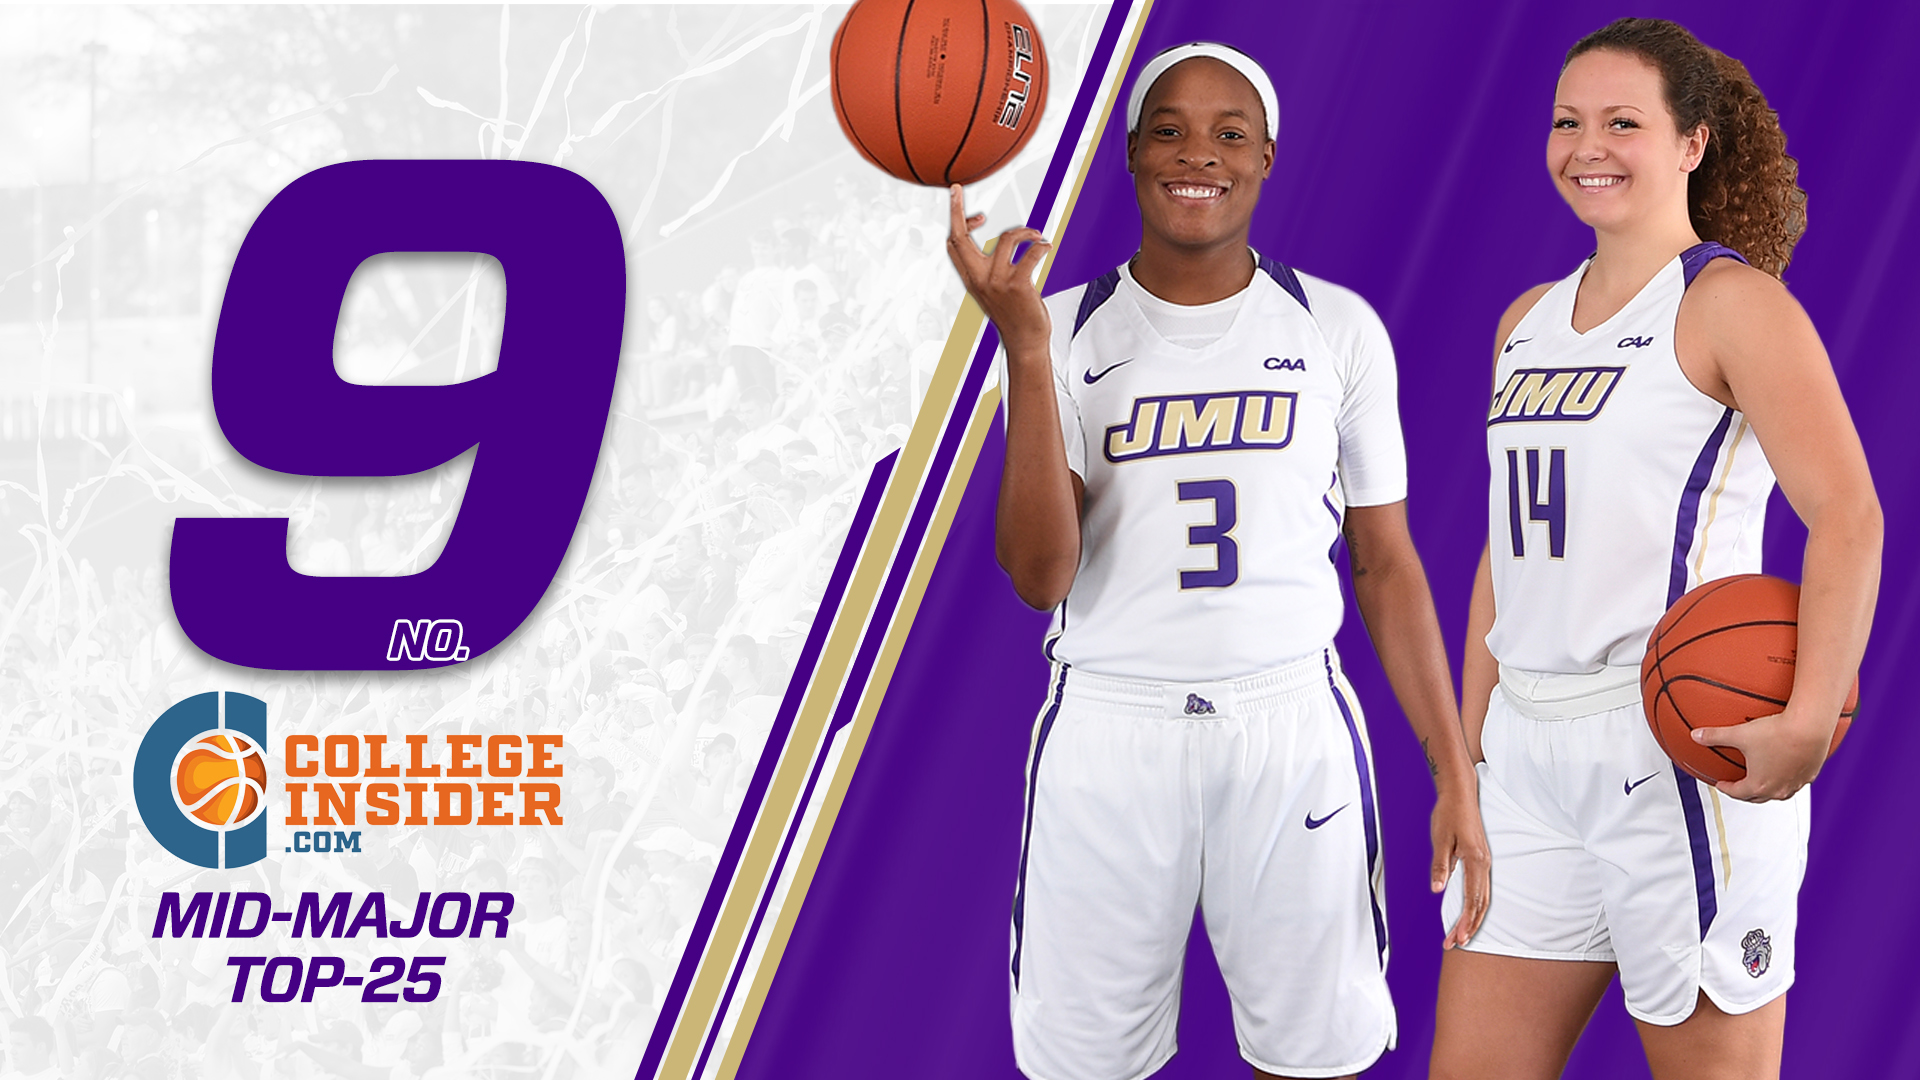 Women's Basketball: Dukes Come In At No. 9 in Mid-Major Poll